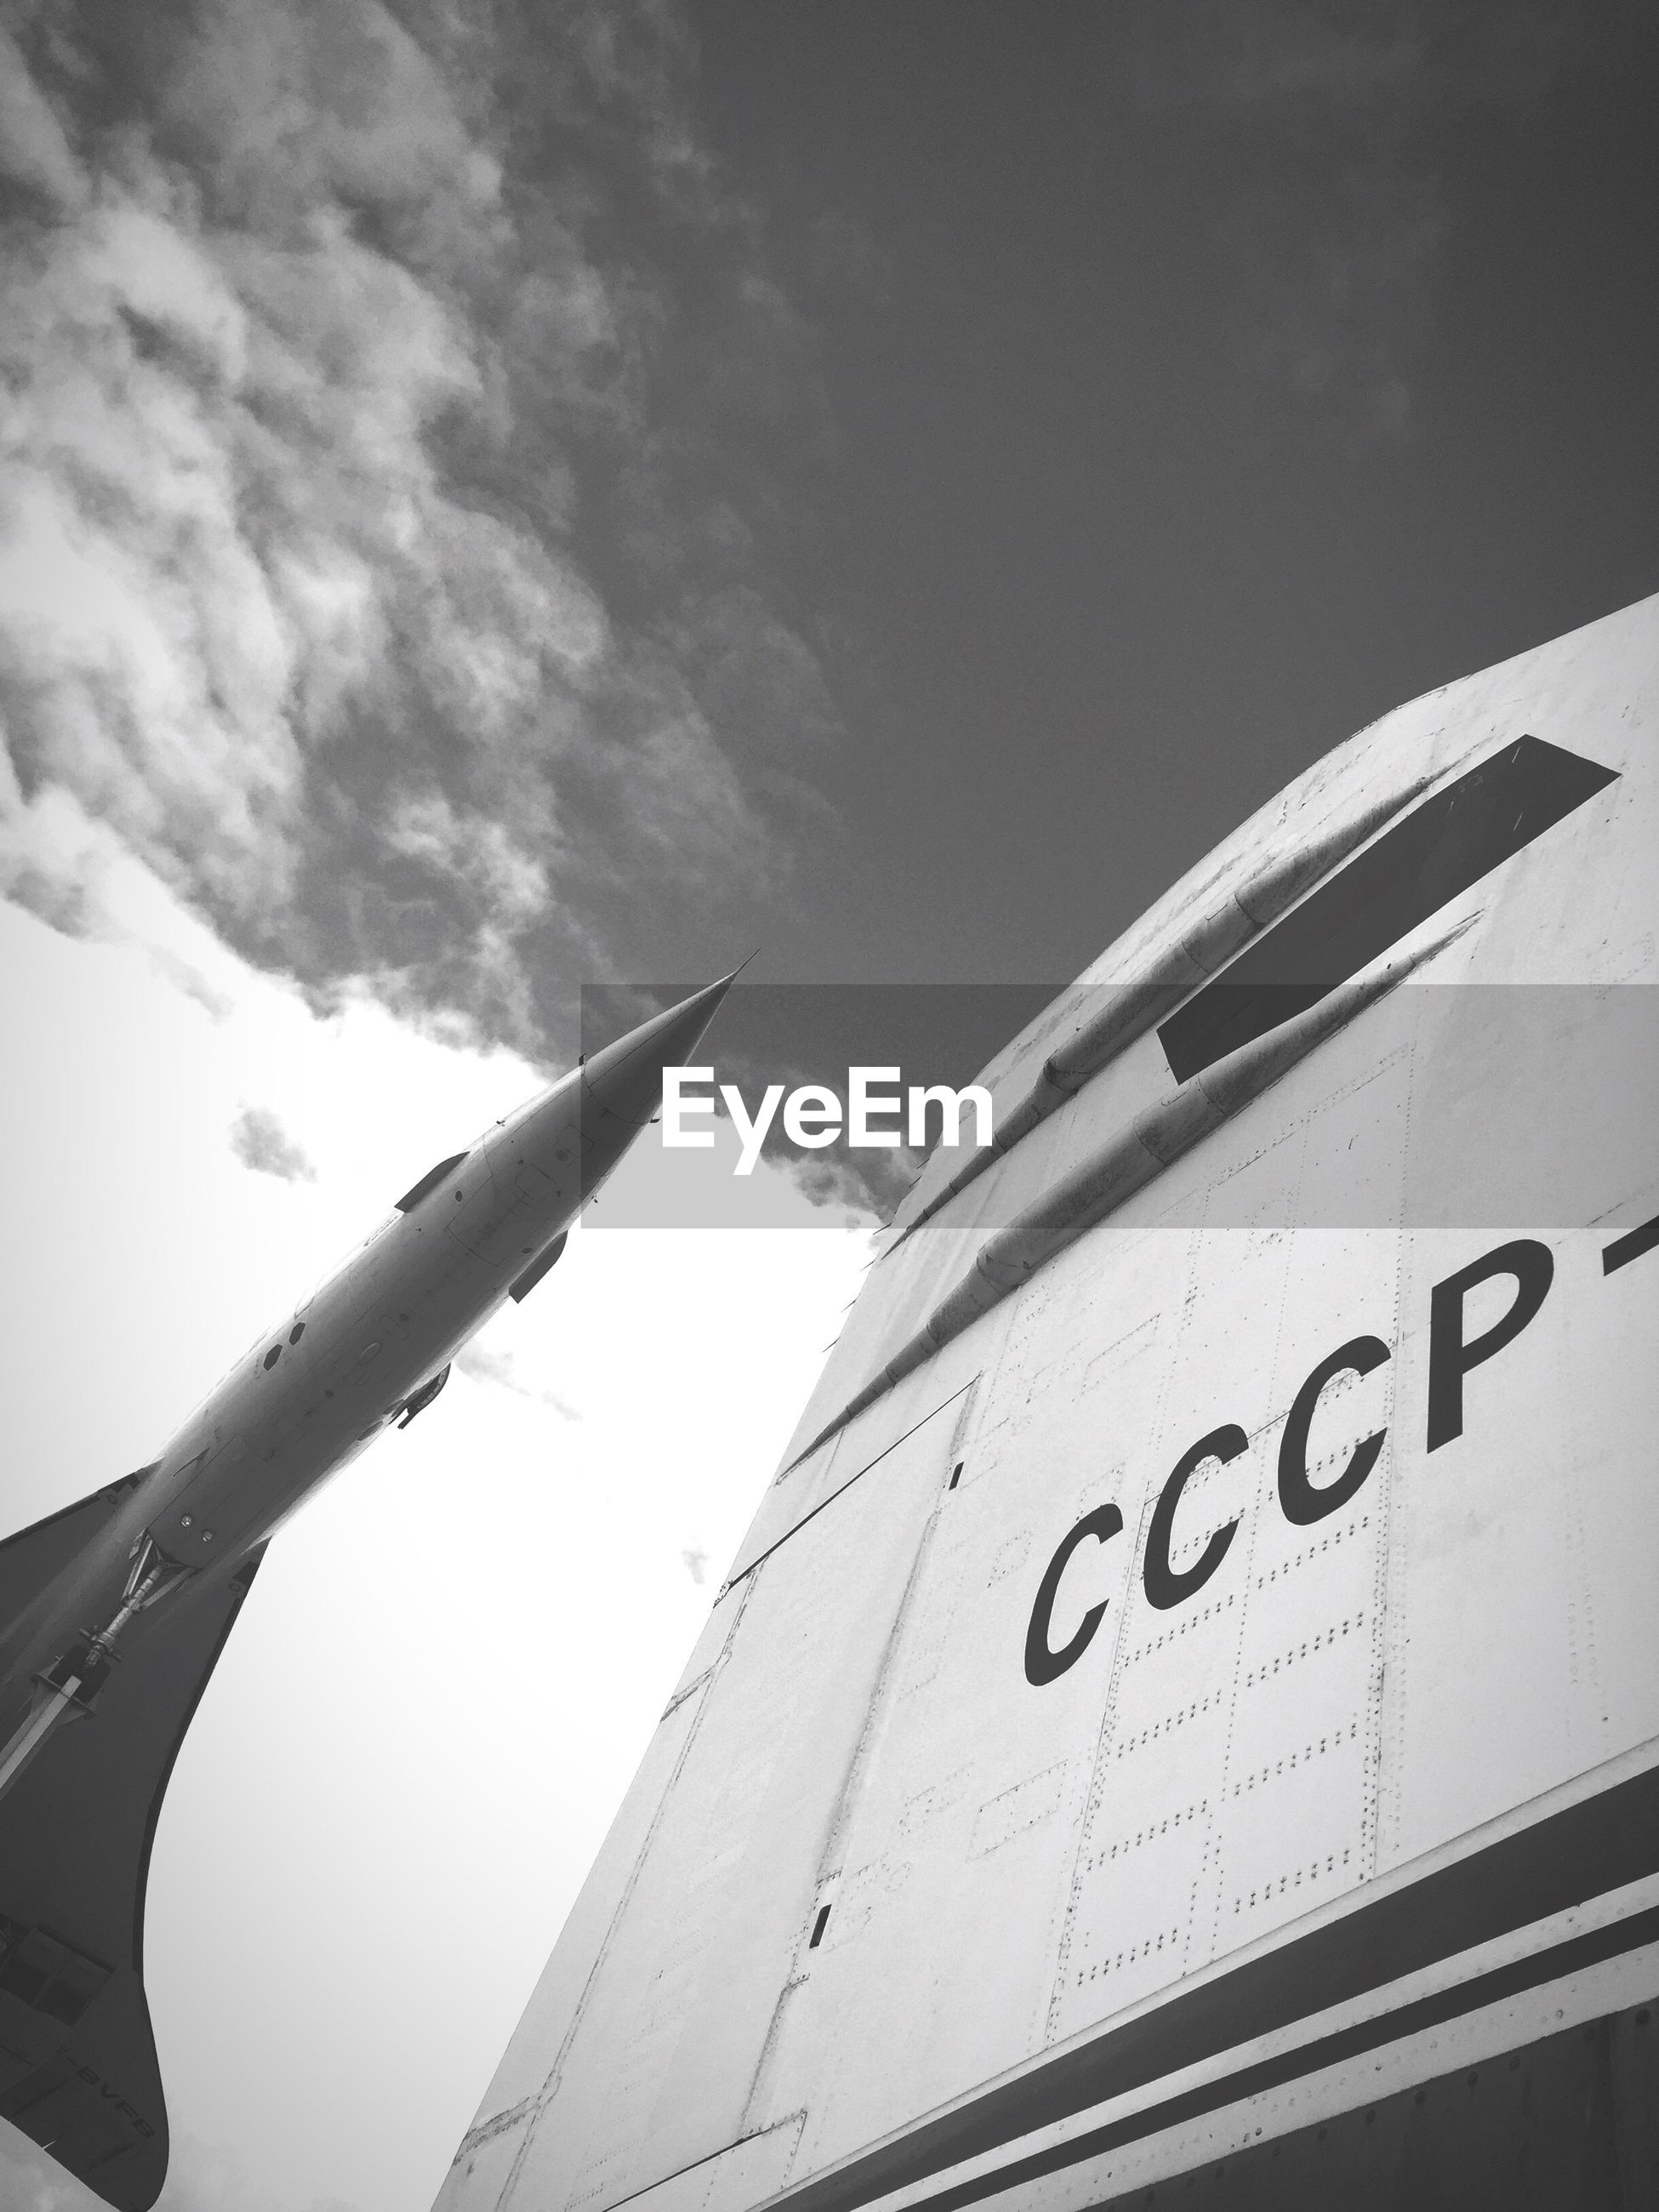 text, communication, day, low angle view, sky, transportation, no people, airplane, outdoors, close-up